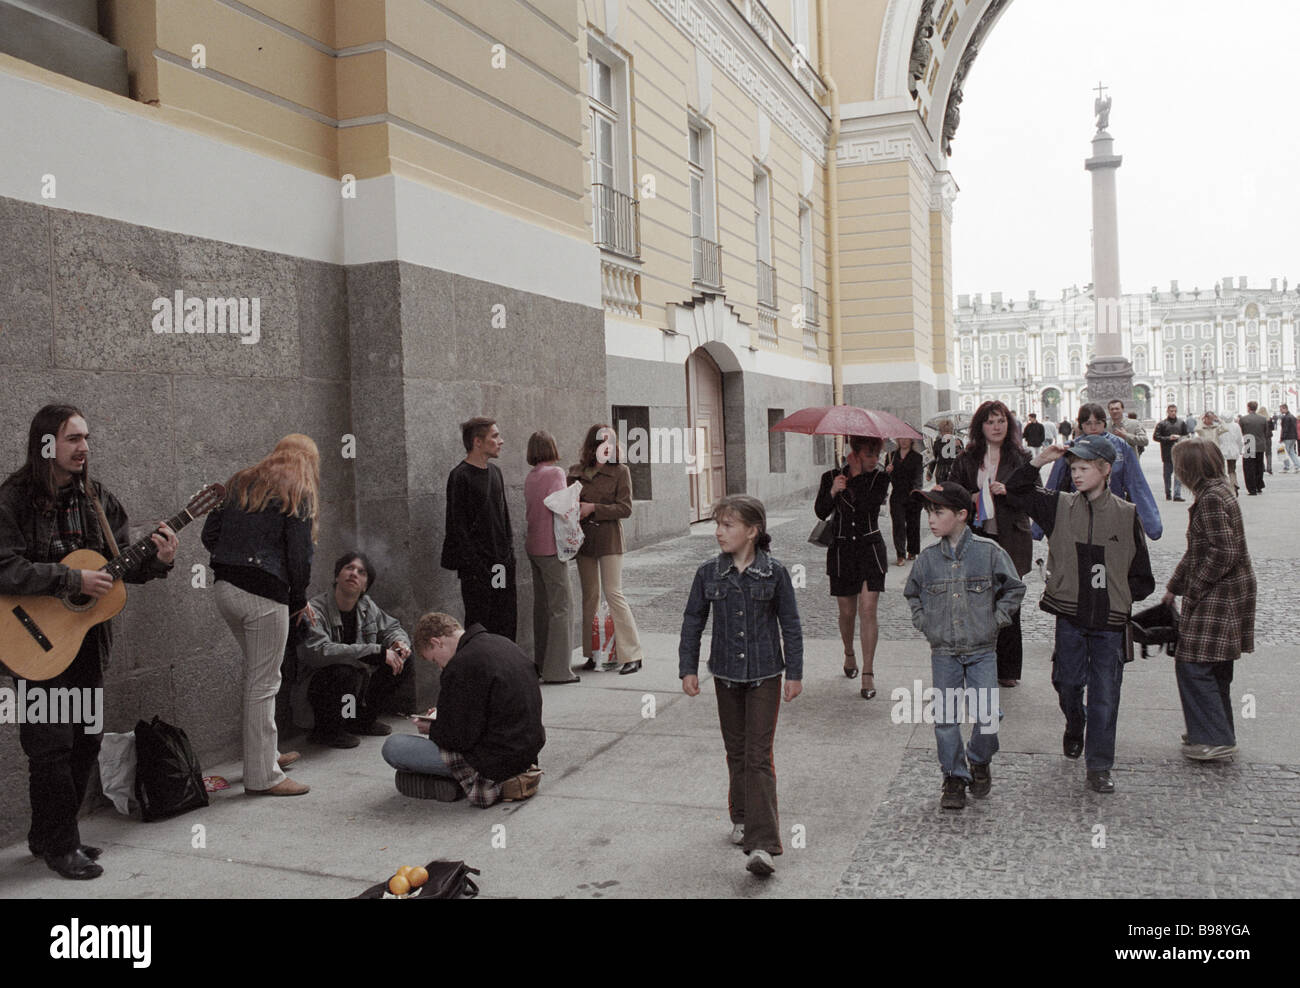 Residents and guests of St Petersburg on Palace Square - Stock Image